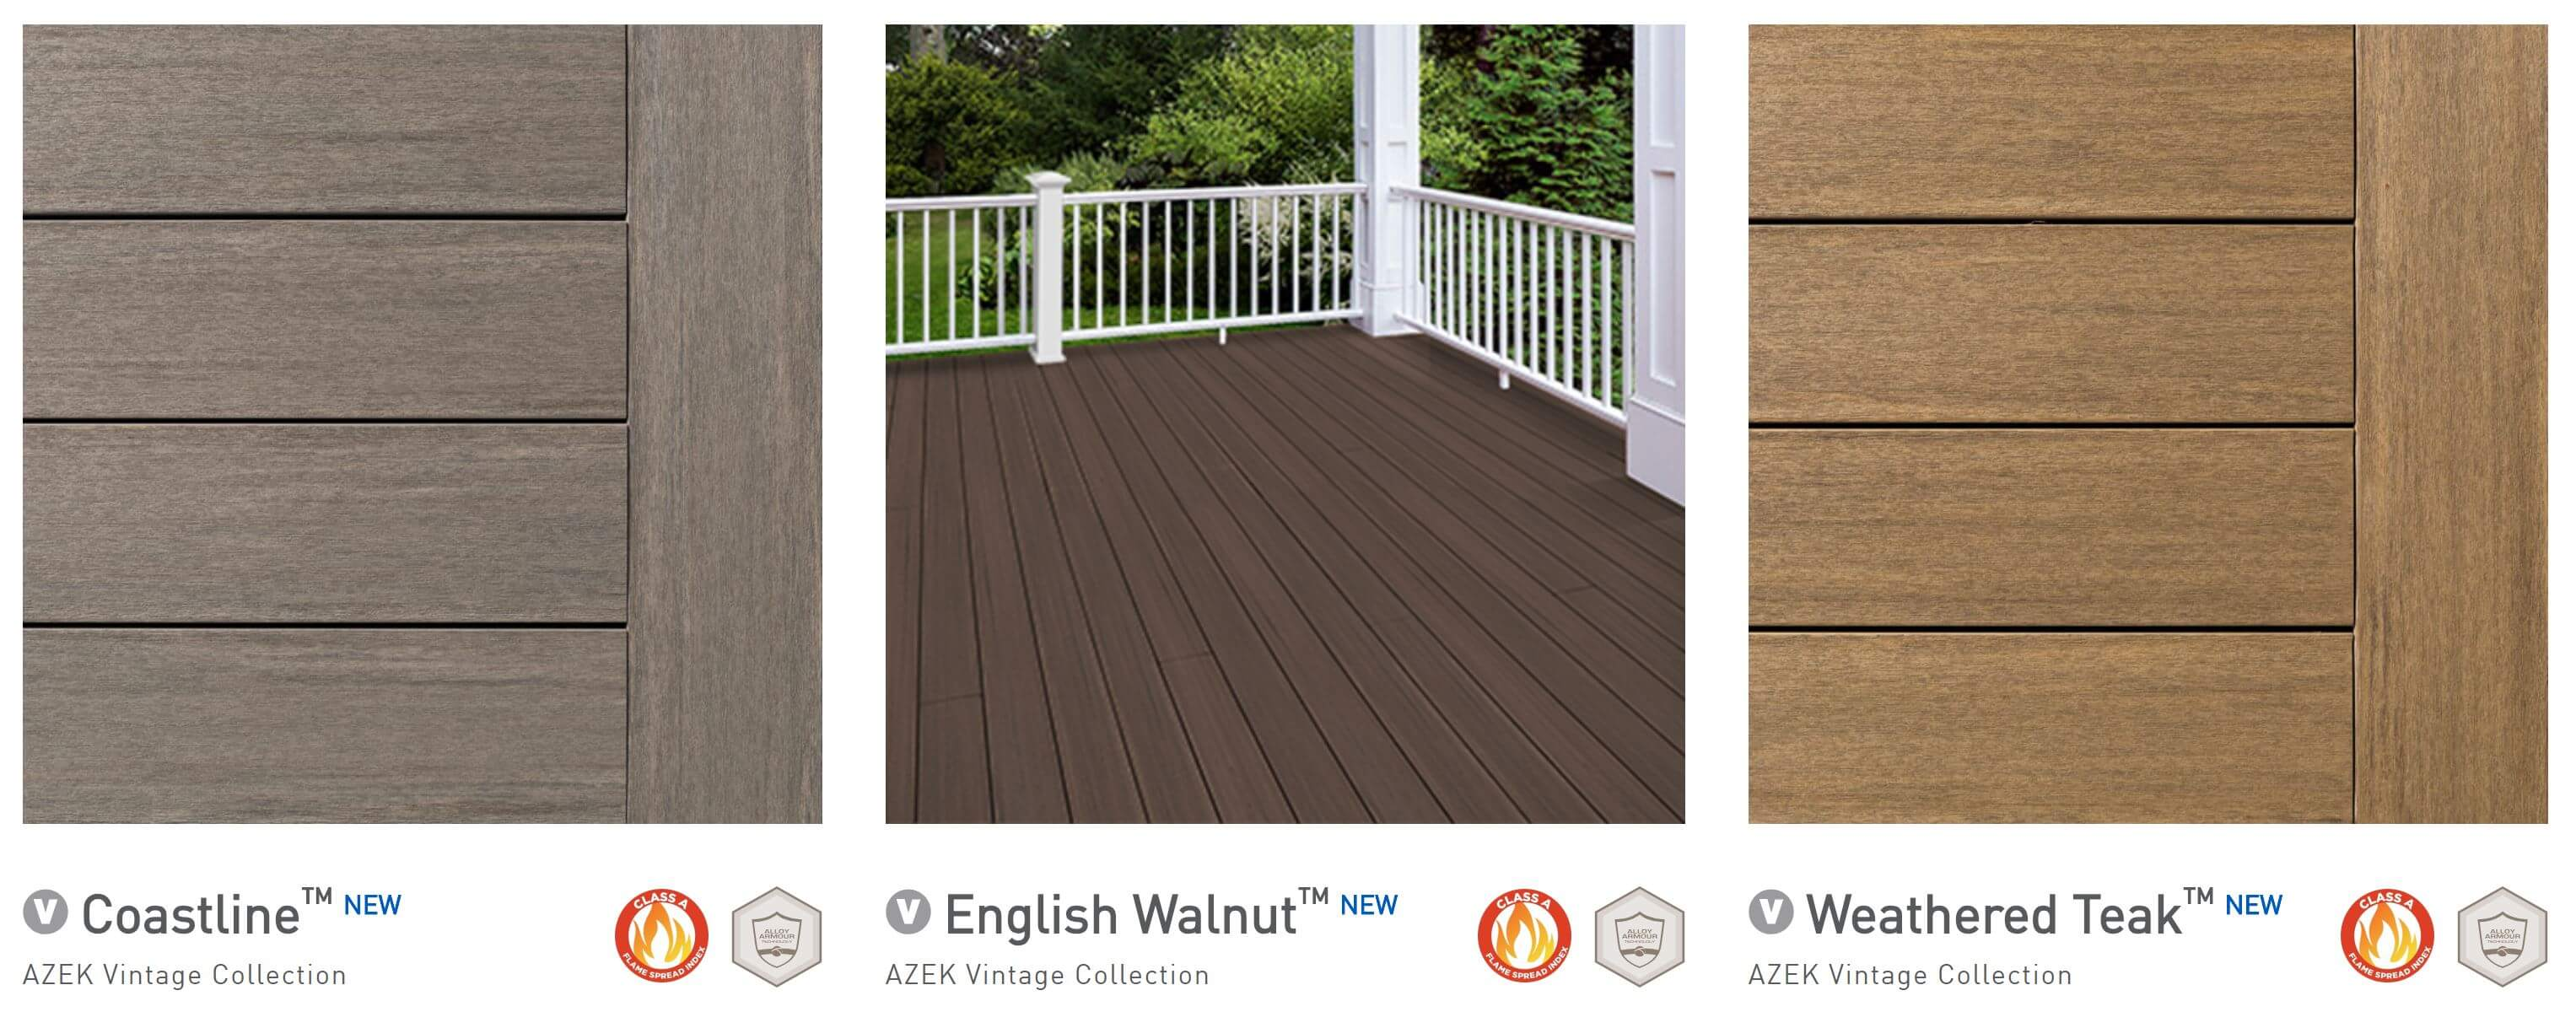 Deck design and color